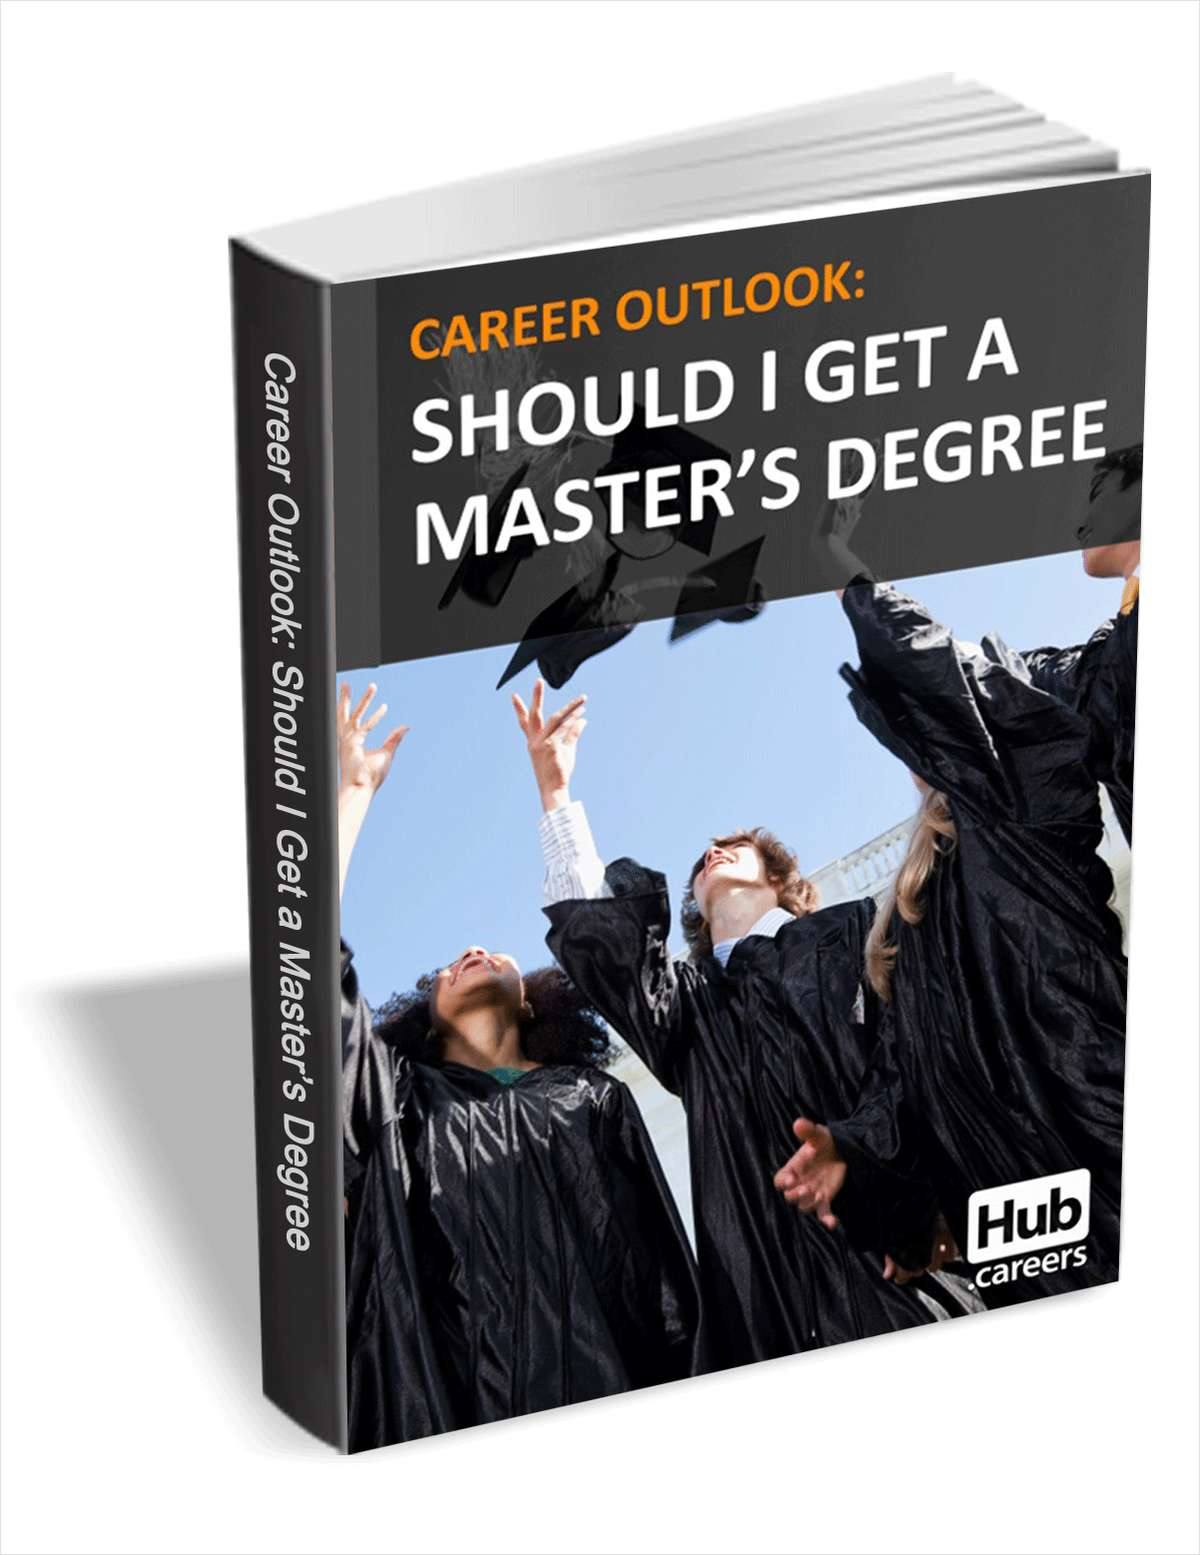 Should I Get a Master's Degree? - Career Outlook